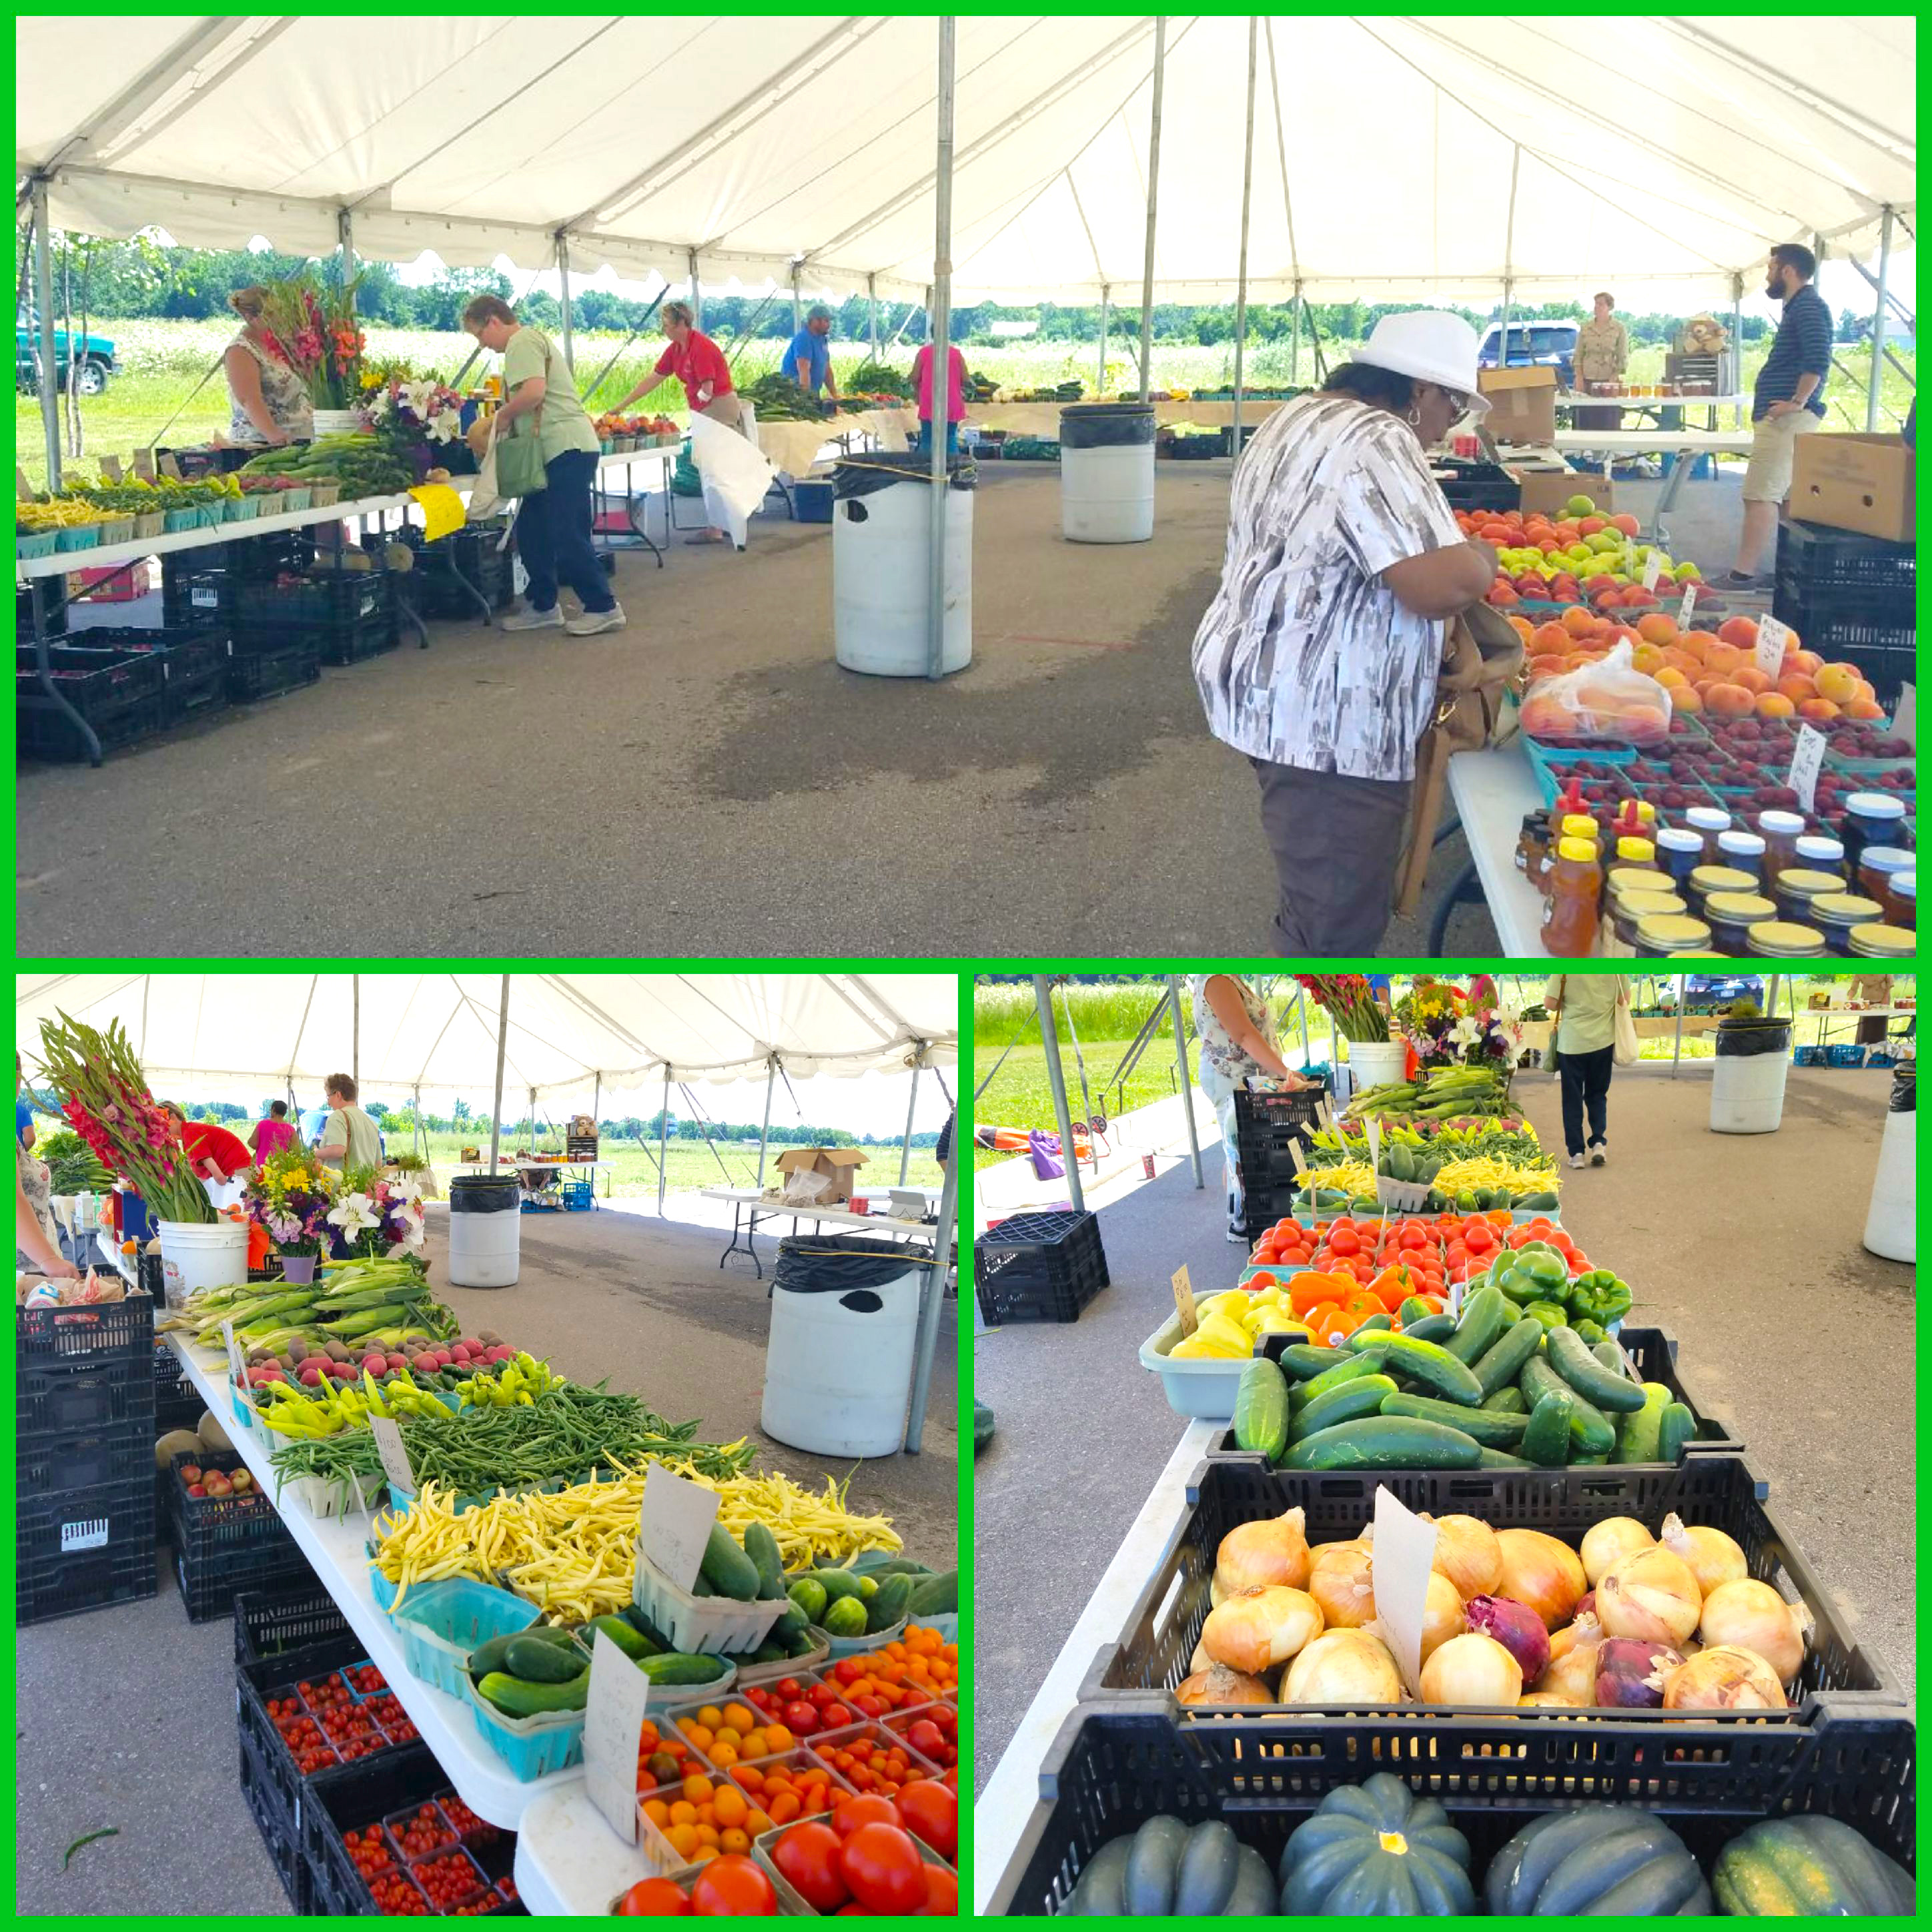 Tables of fresh produce: corn, tomatoes, broccoli.